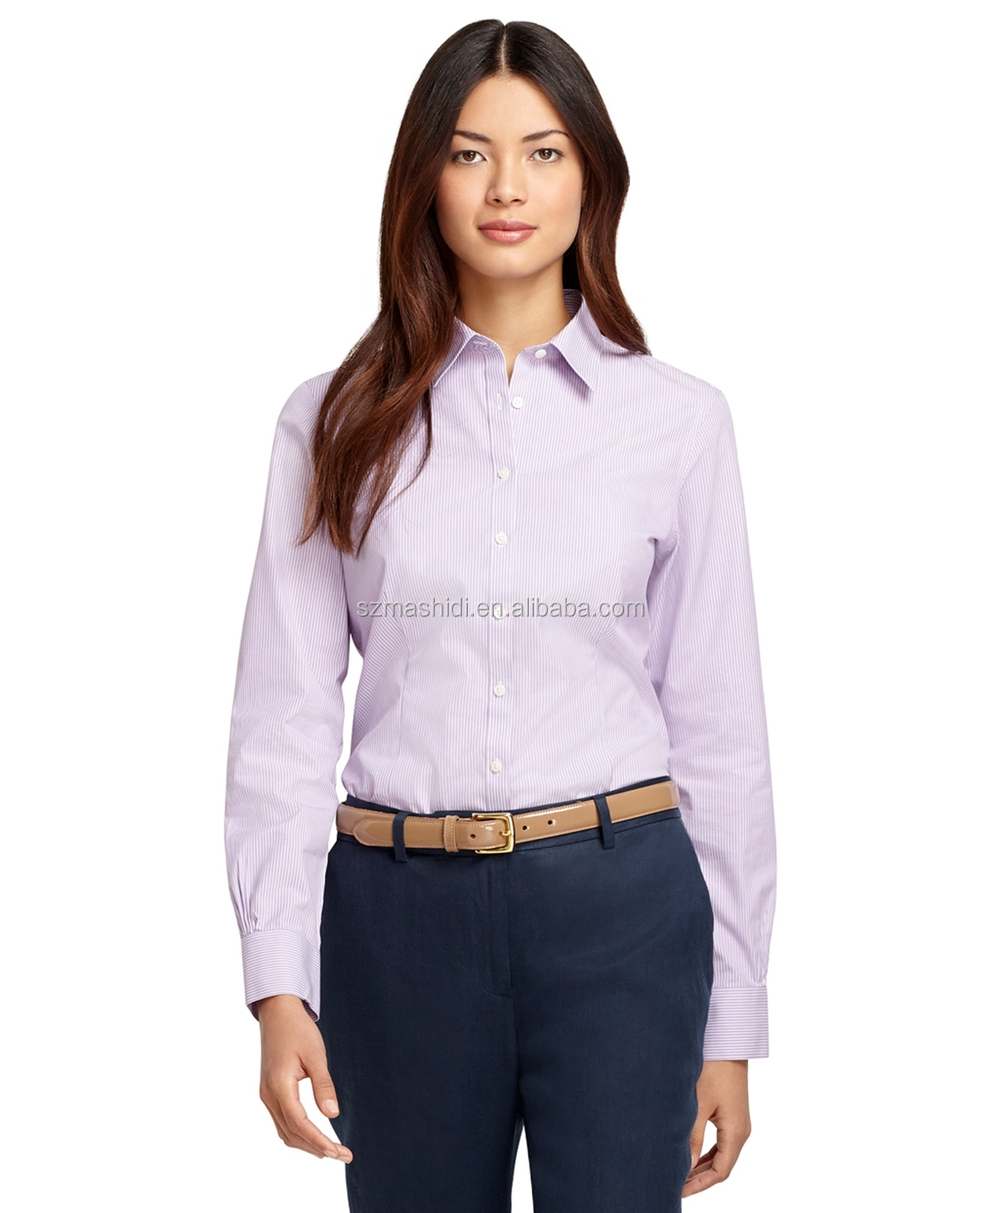 Trendy And Popular Office Uniform Designs For Women Slim Fit Dress ...